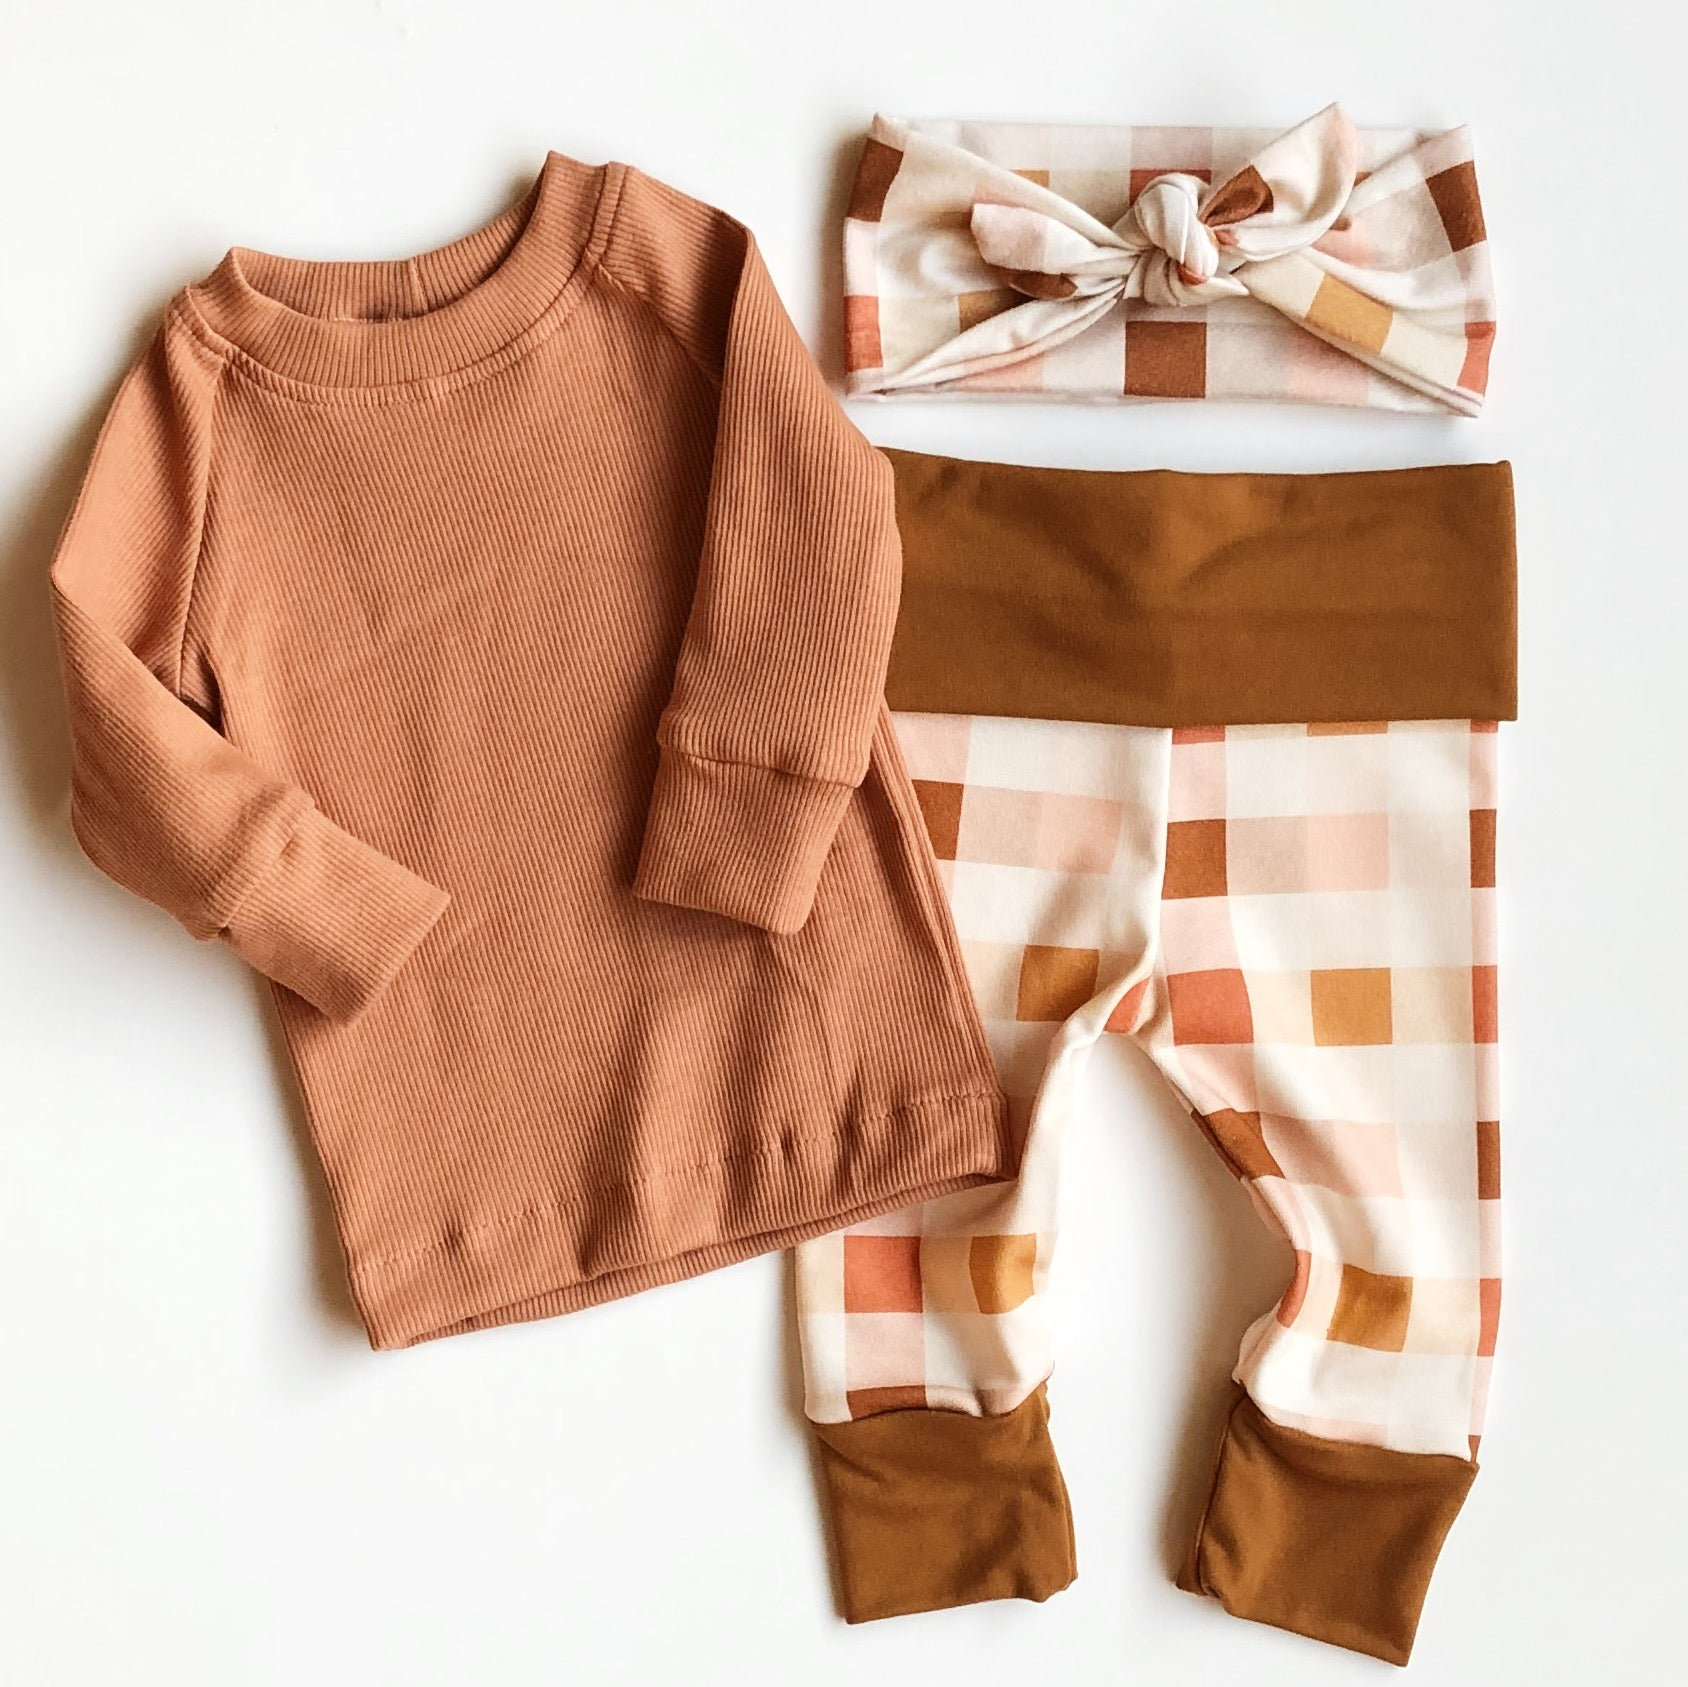 ORGANIC Ribbed Knit Top OR Bottom SOLD SEPARATELY - Terra-Cotta